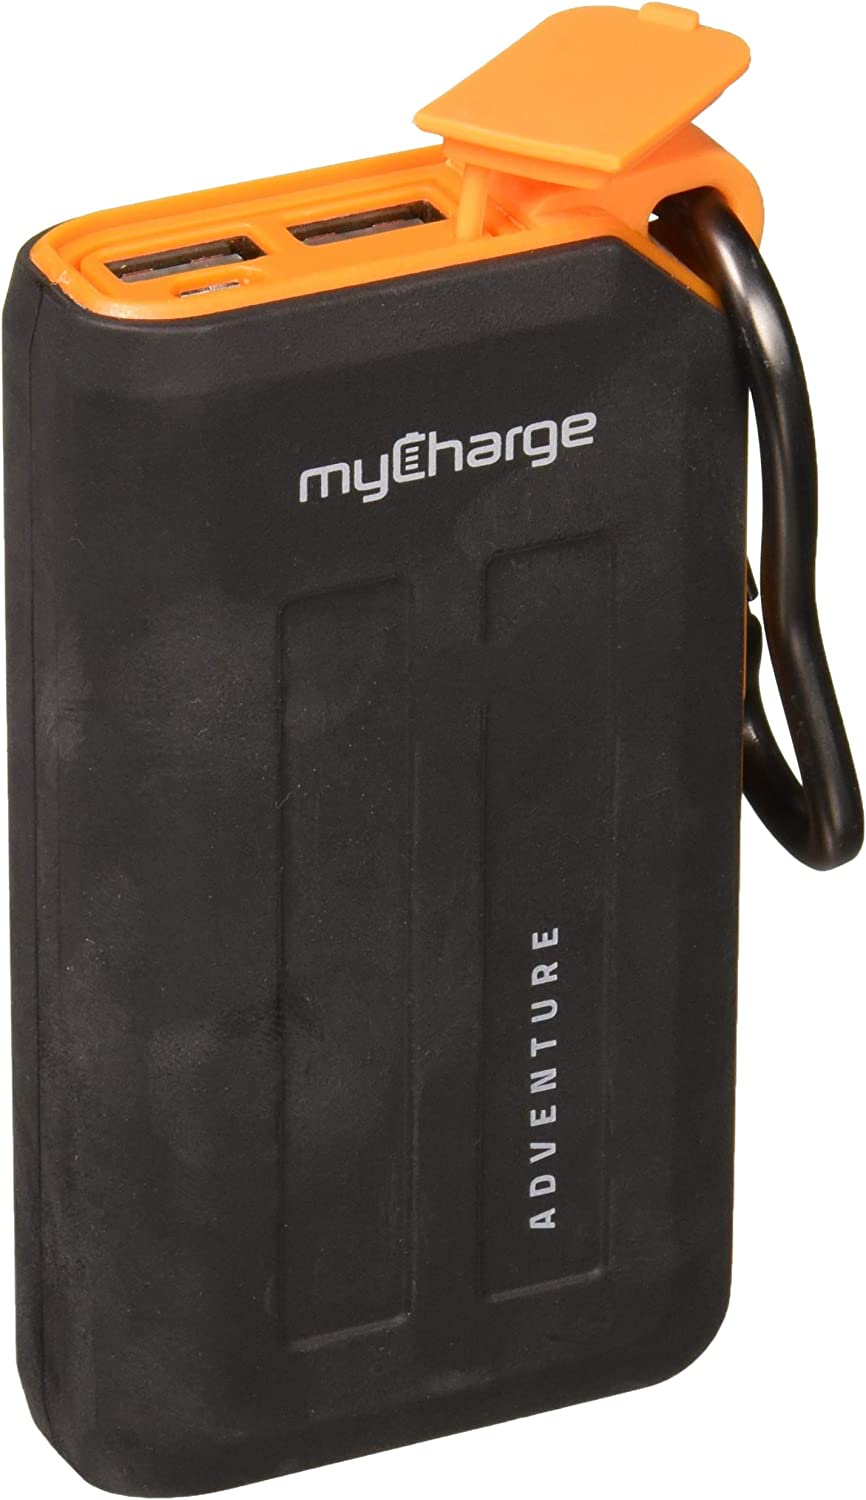 myCharge Adventureplus Portable Charger 6700mAh Rugged External Battery Pack with Built-in Carabiner Clip and Dual USB Ports for Smartphones, Tablets and USB Devices (iPhone, iPad, Samsung Galaxy)